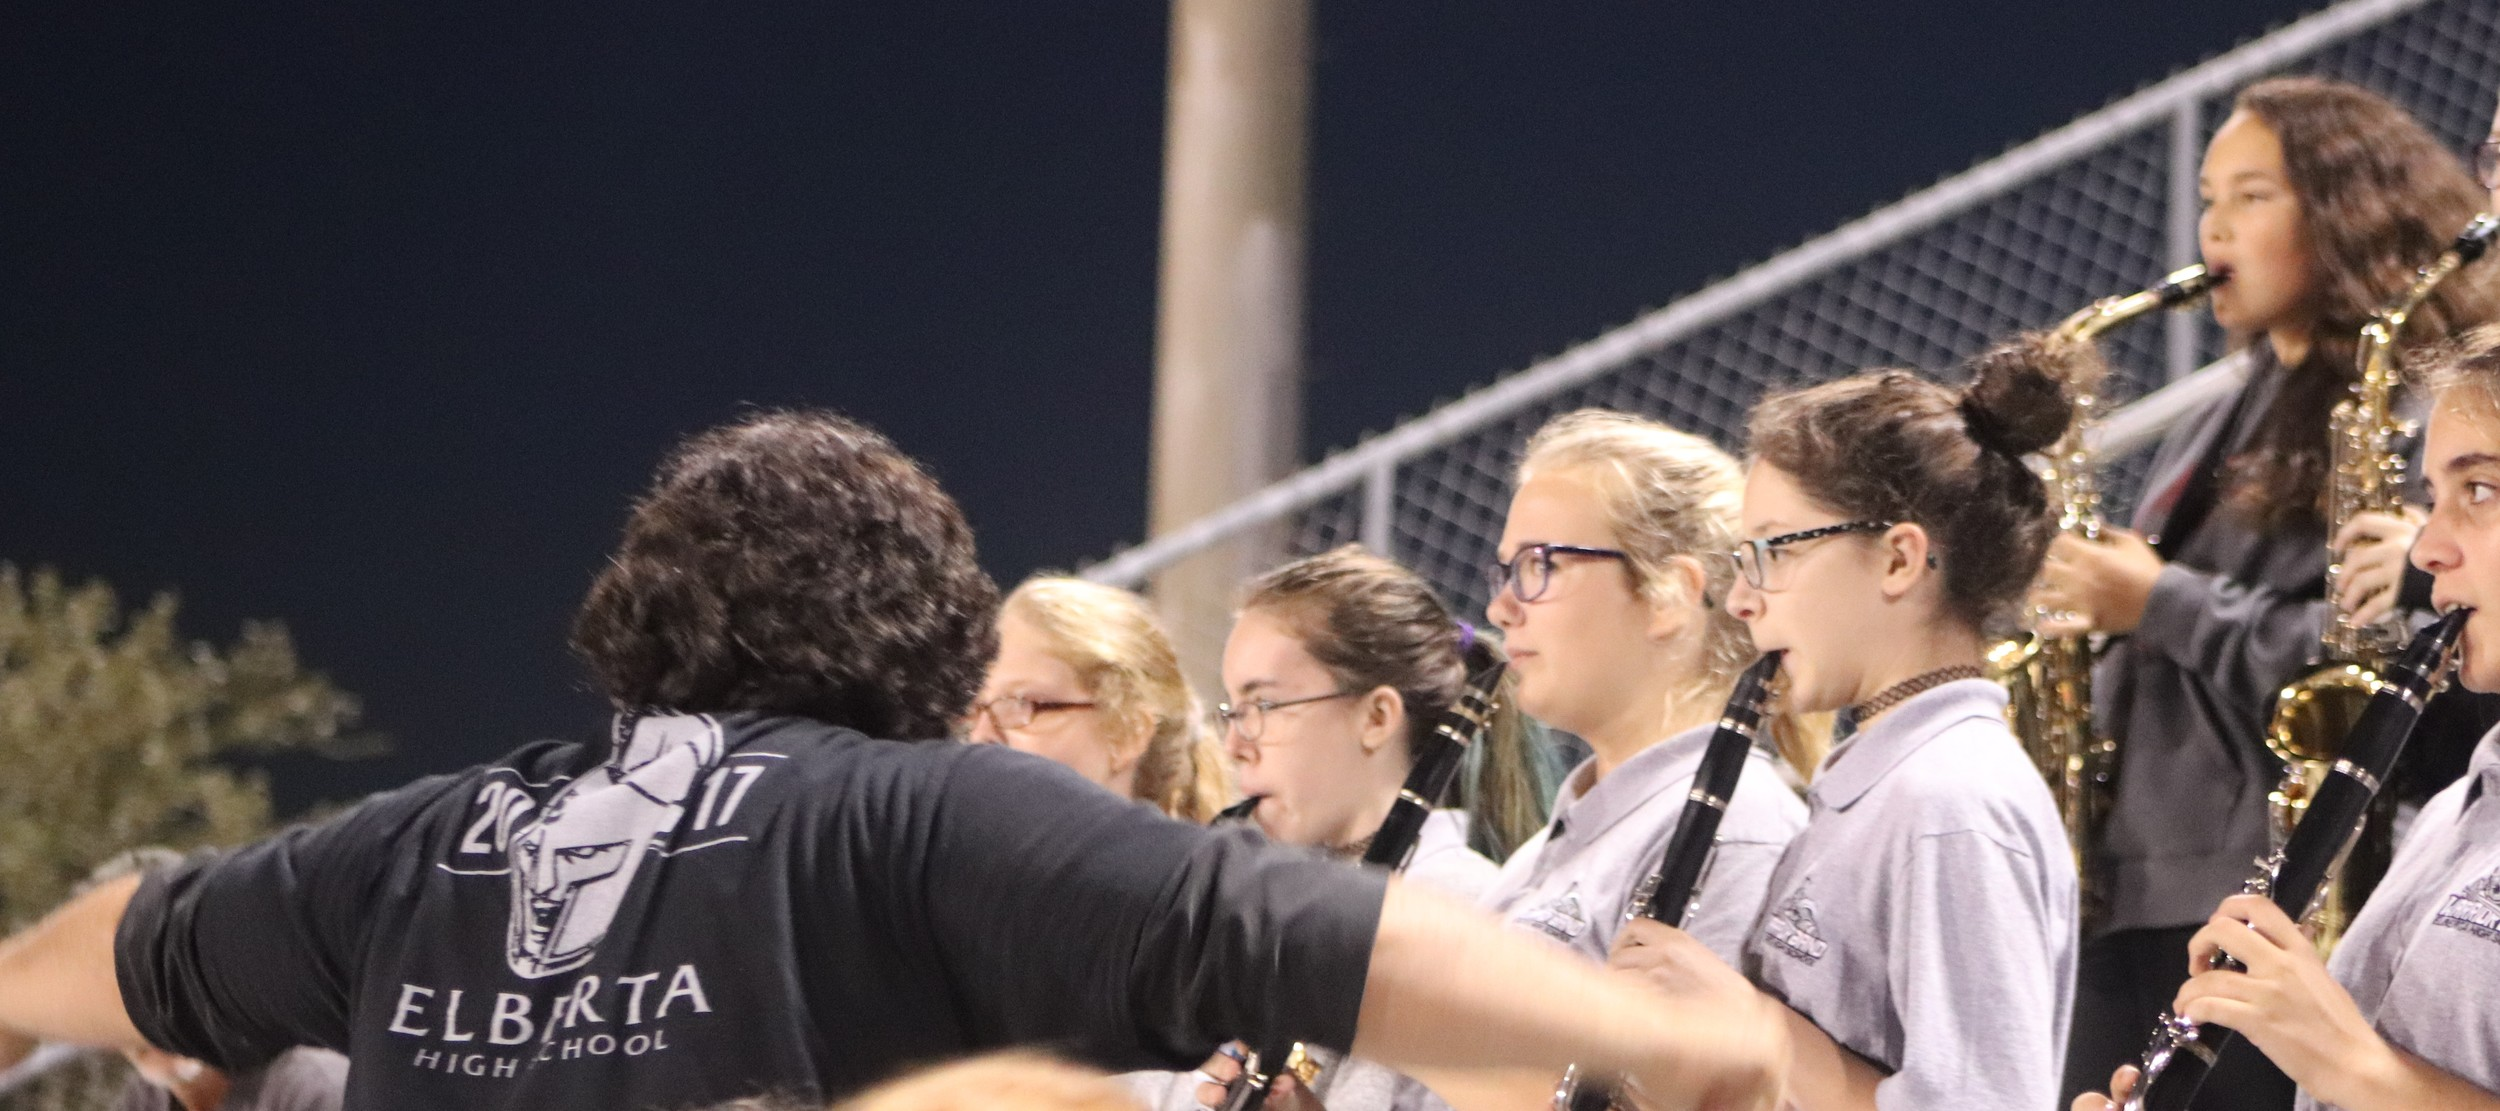 The Elberta High School Band cheers on their team from the stands.